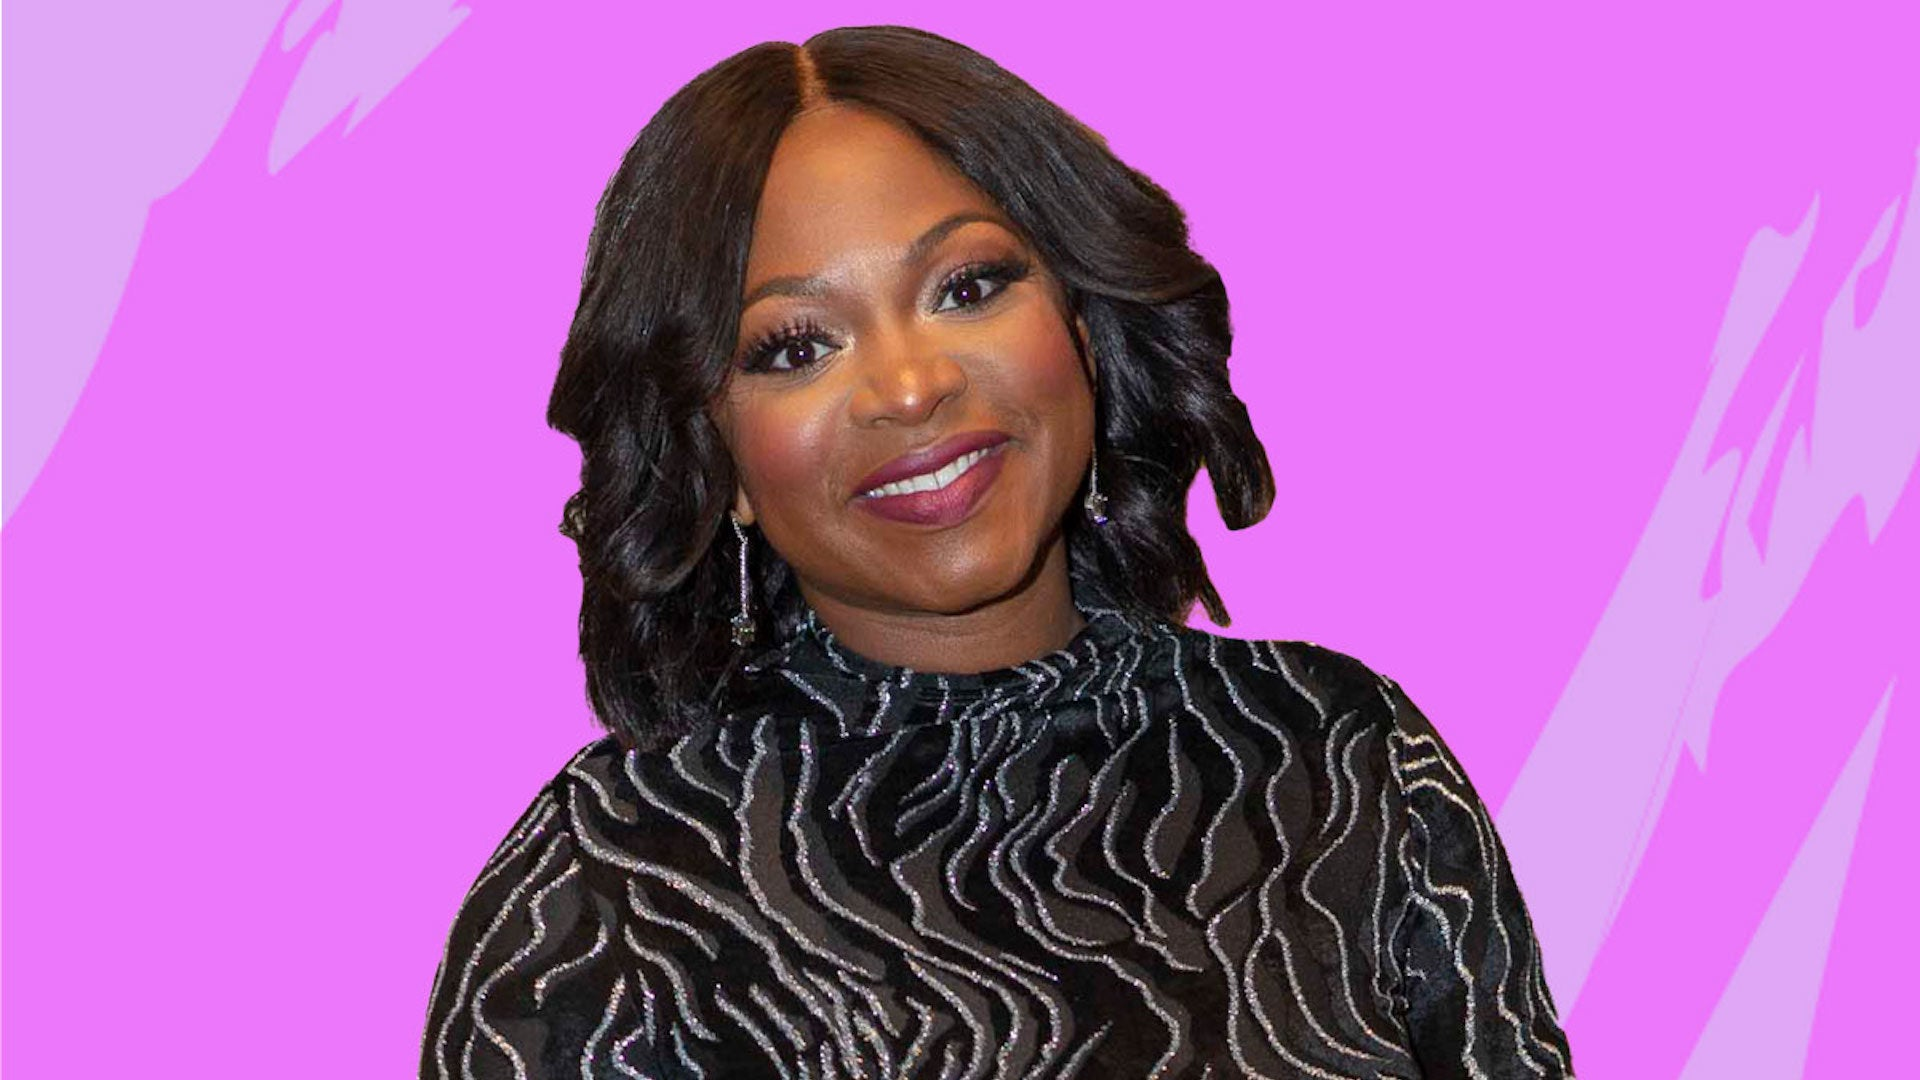 Naturi Naughton Reveals Why She Broke Up With Her Partner